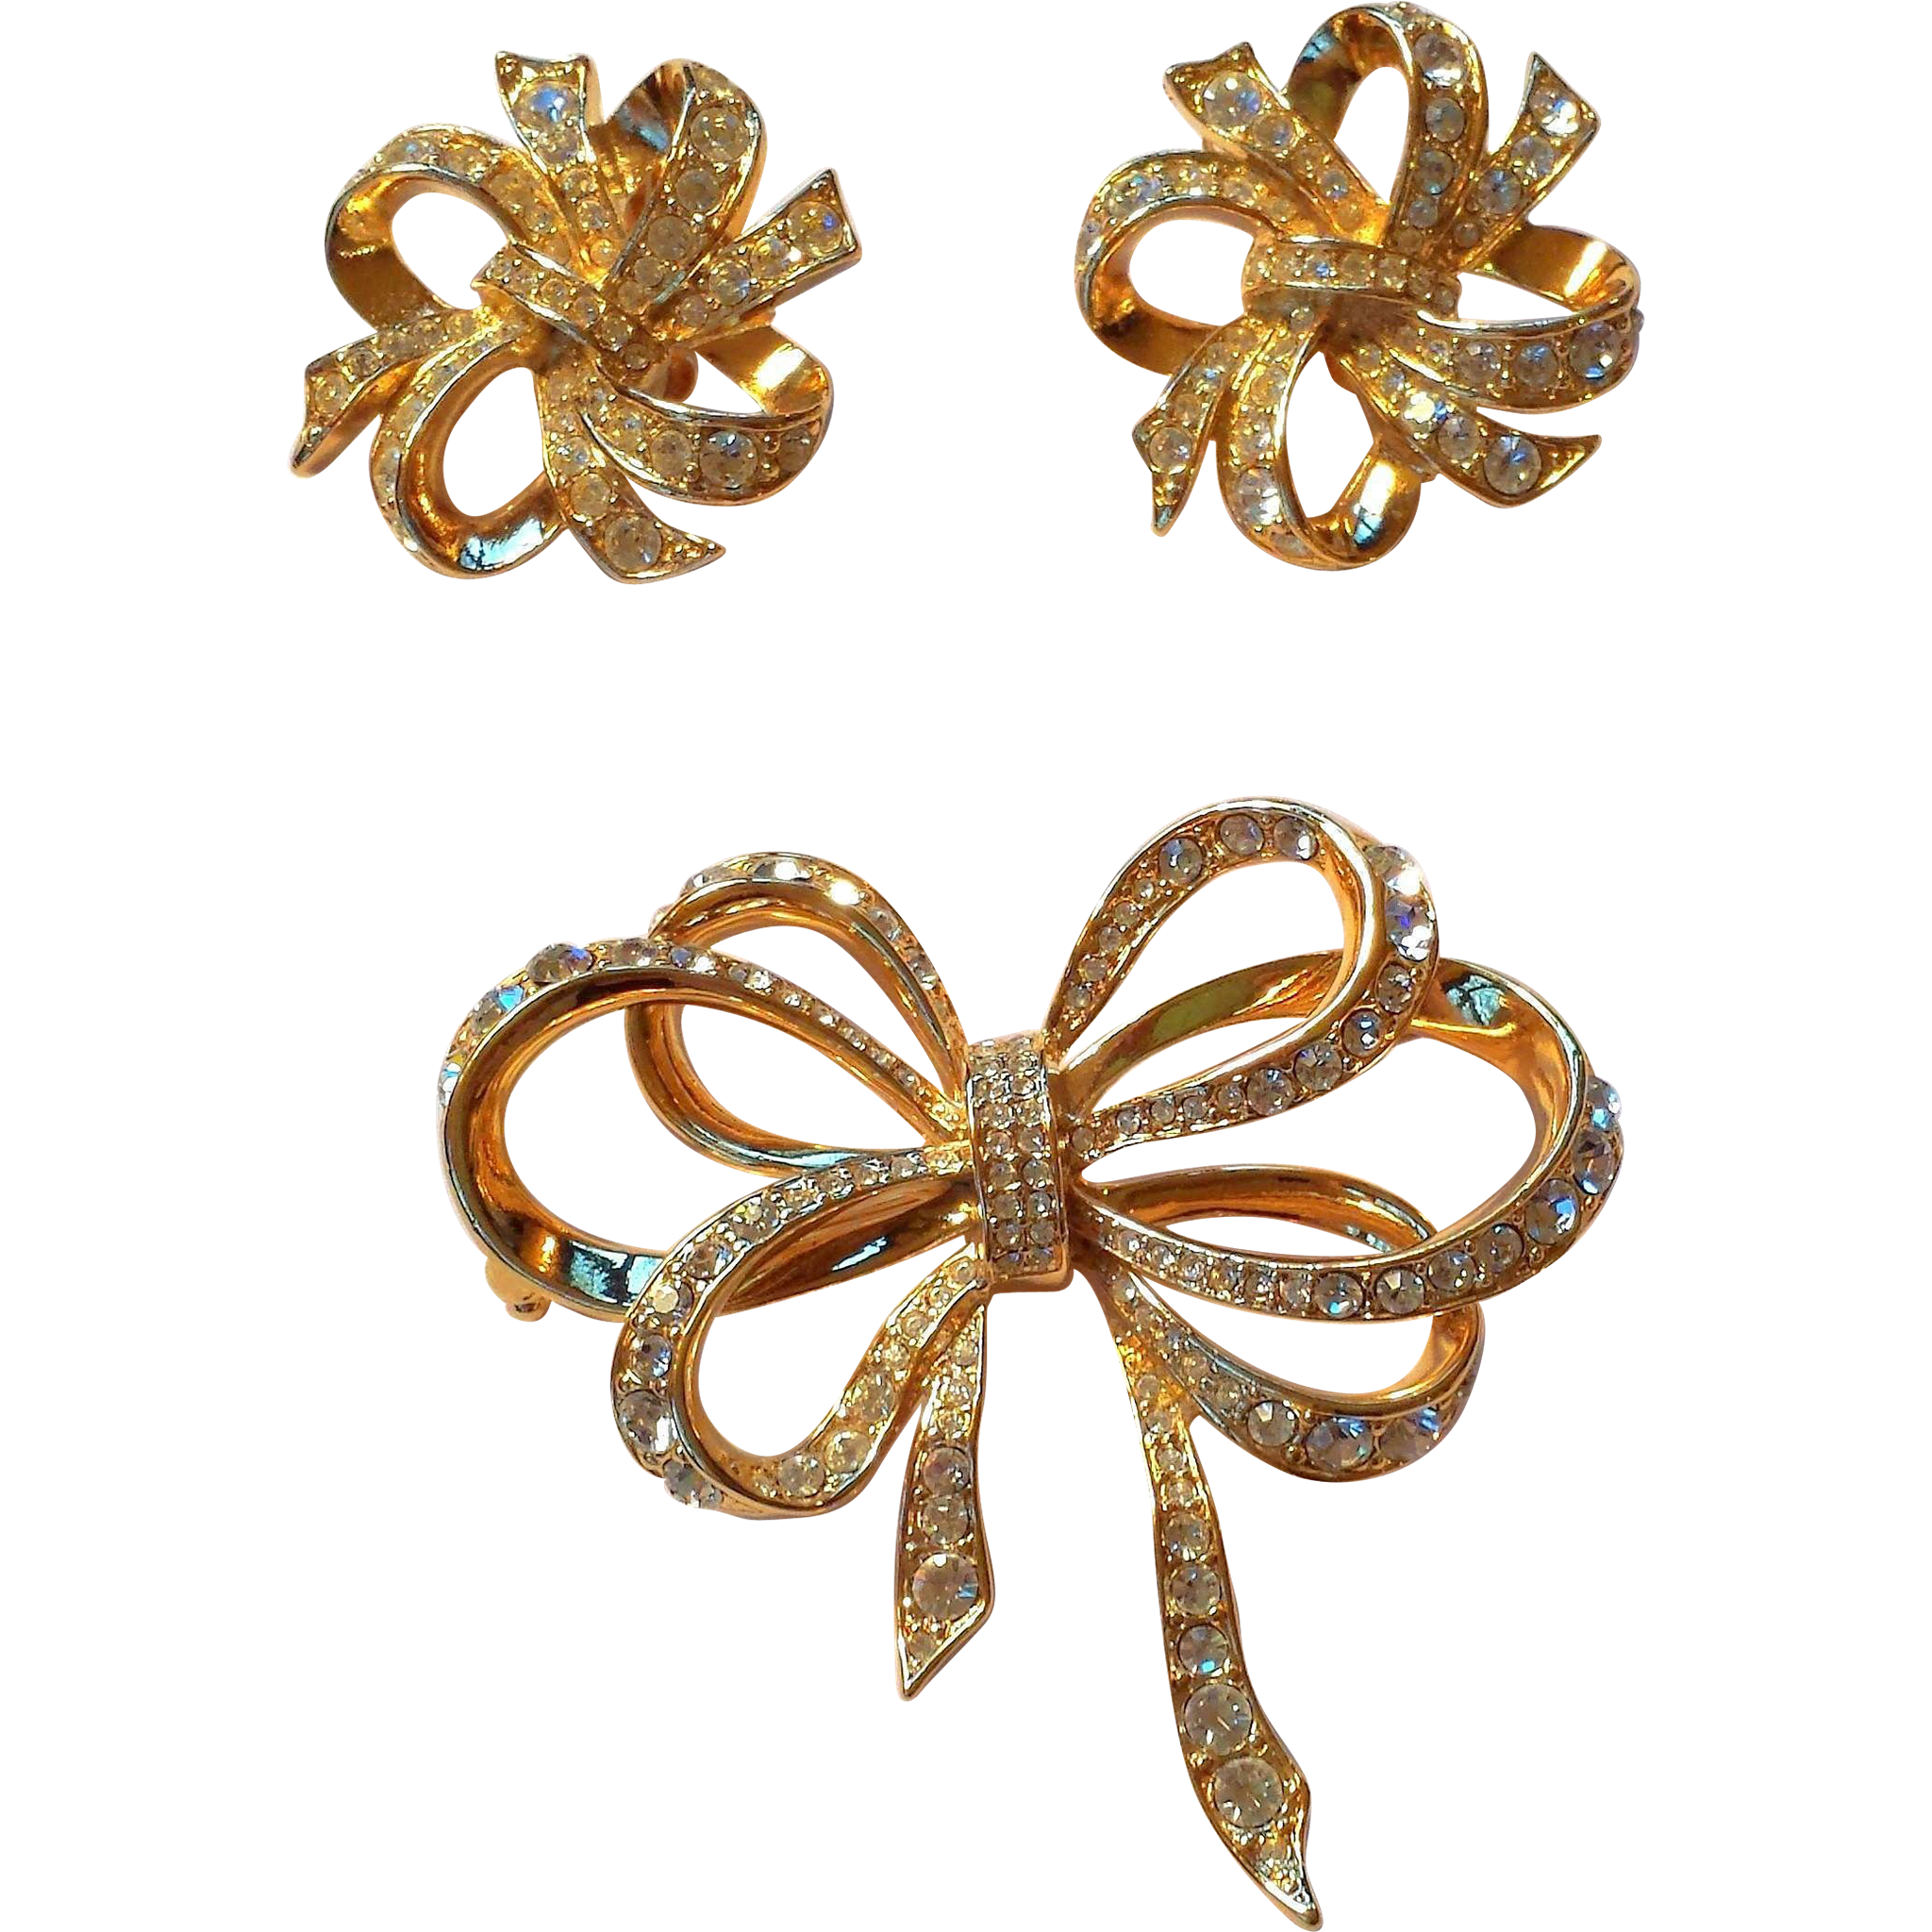 Kenneth Jay Lane Earring Brooch Set SWAROVSKI AB Crystals, 22K  Gold Plate AVON Collection BOOK PIECE